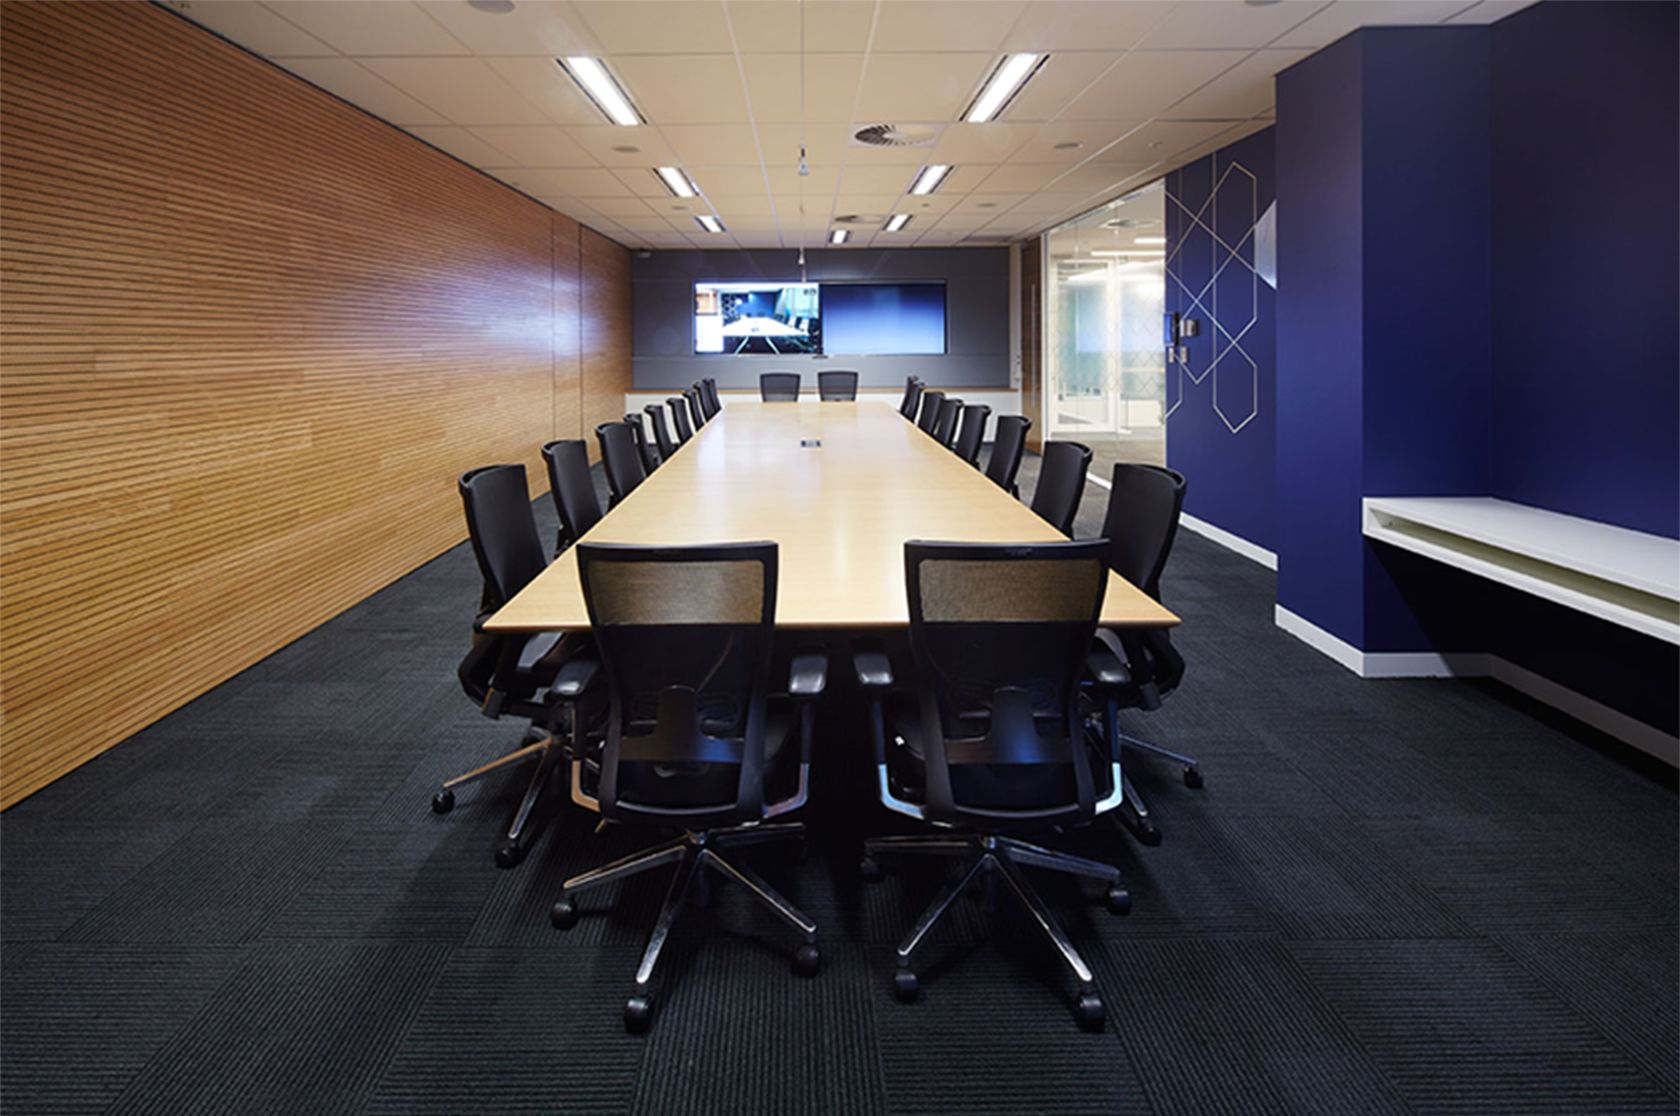 AbbVie conference room in the Australia location.